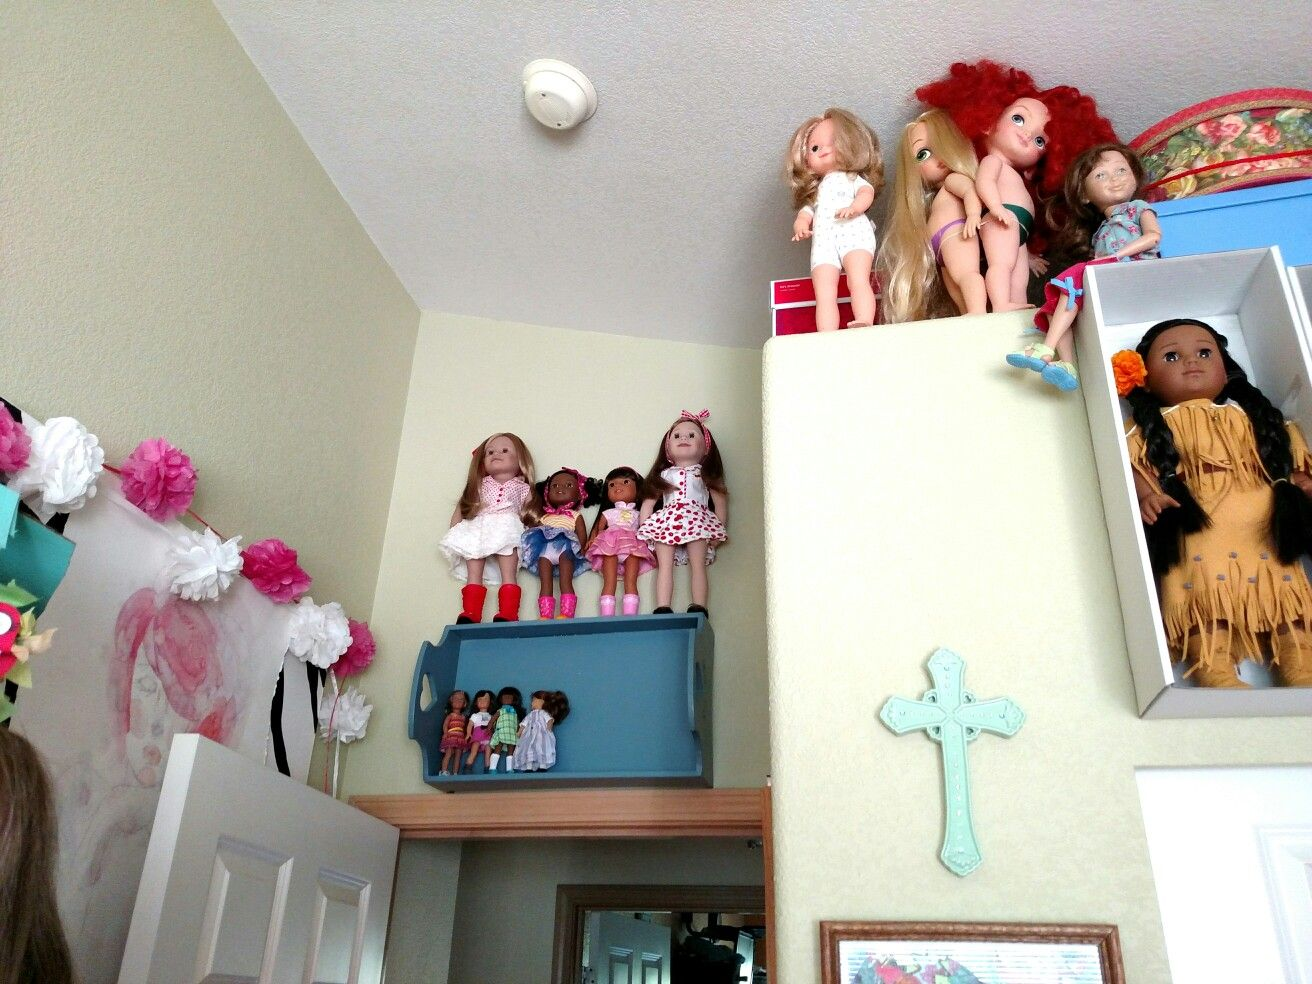 Above the door my niece entrusted some of her kirsten collection to